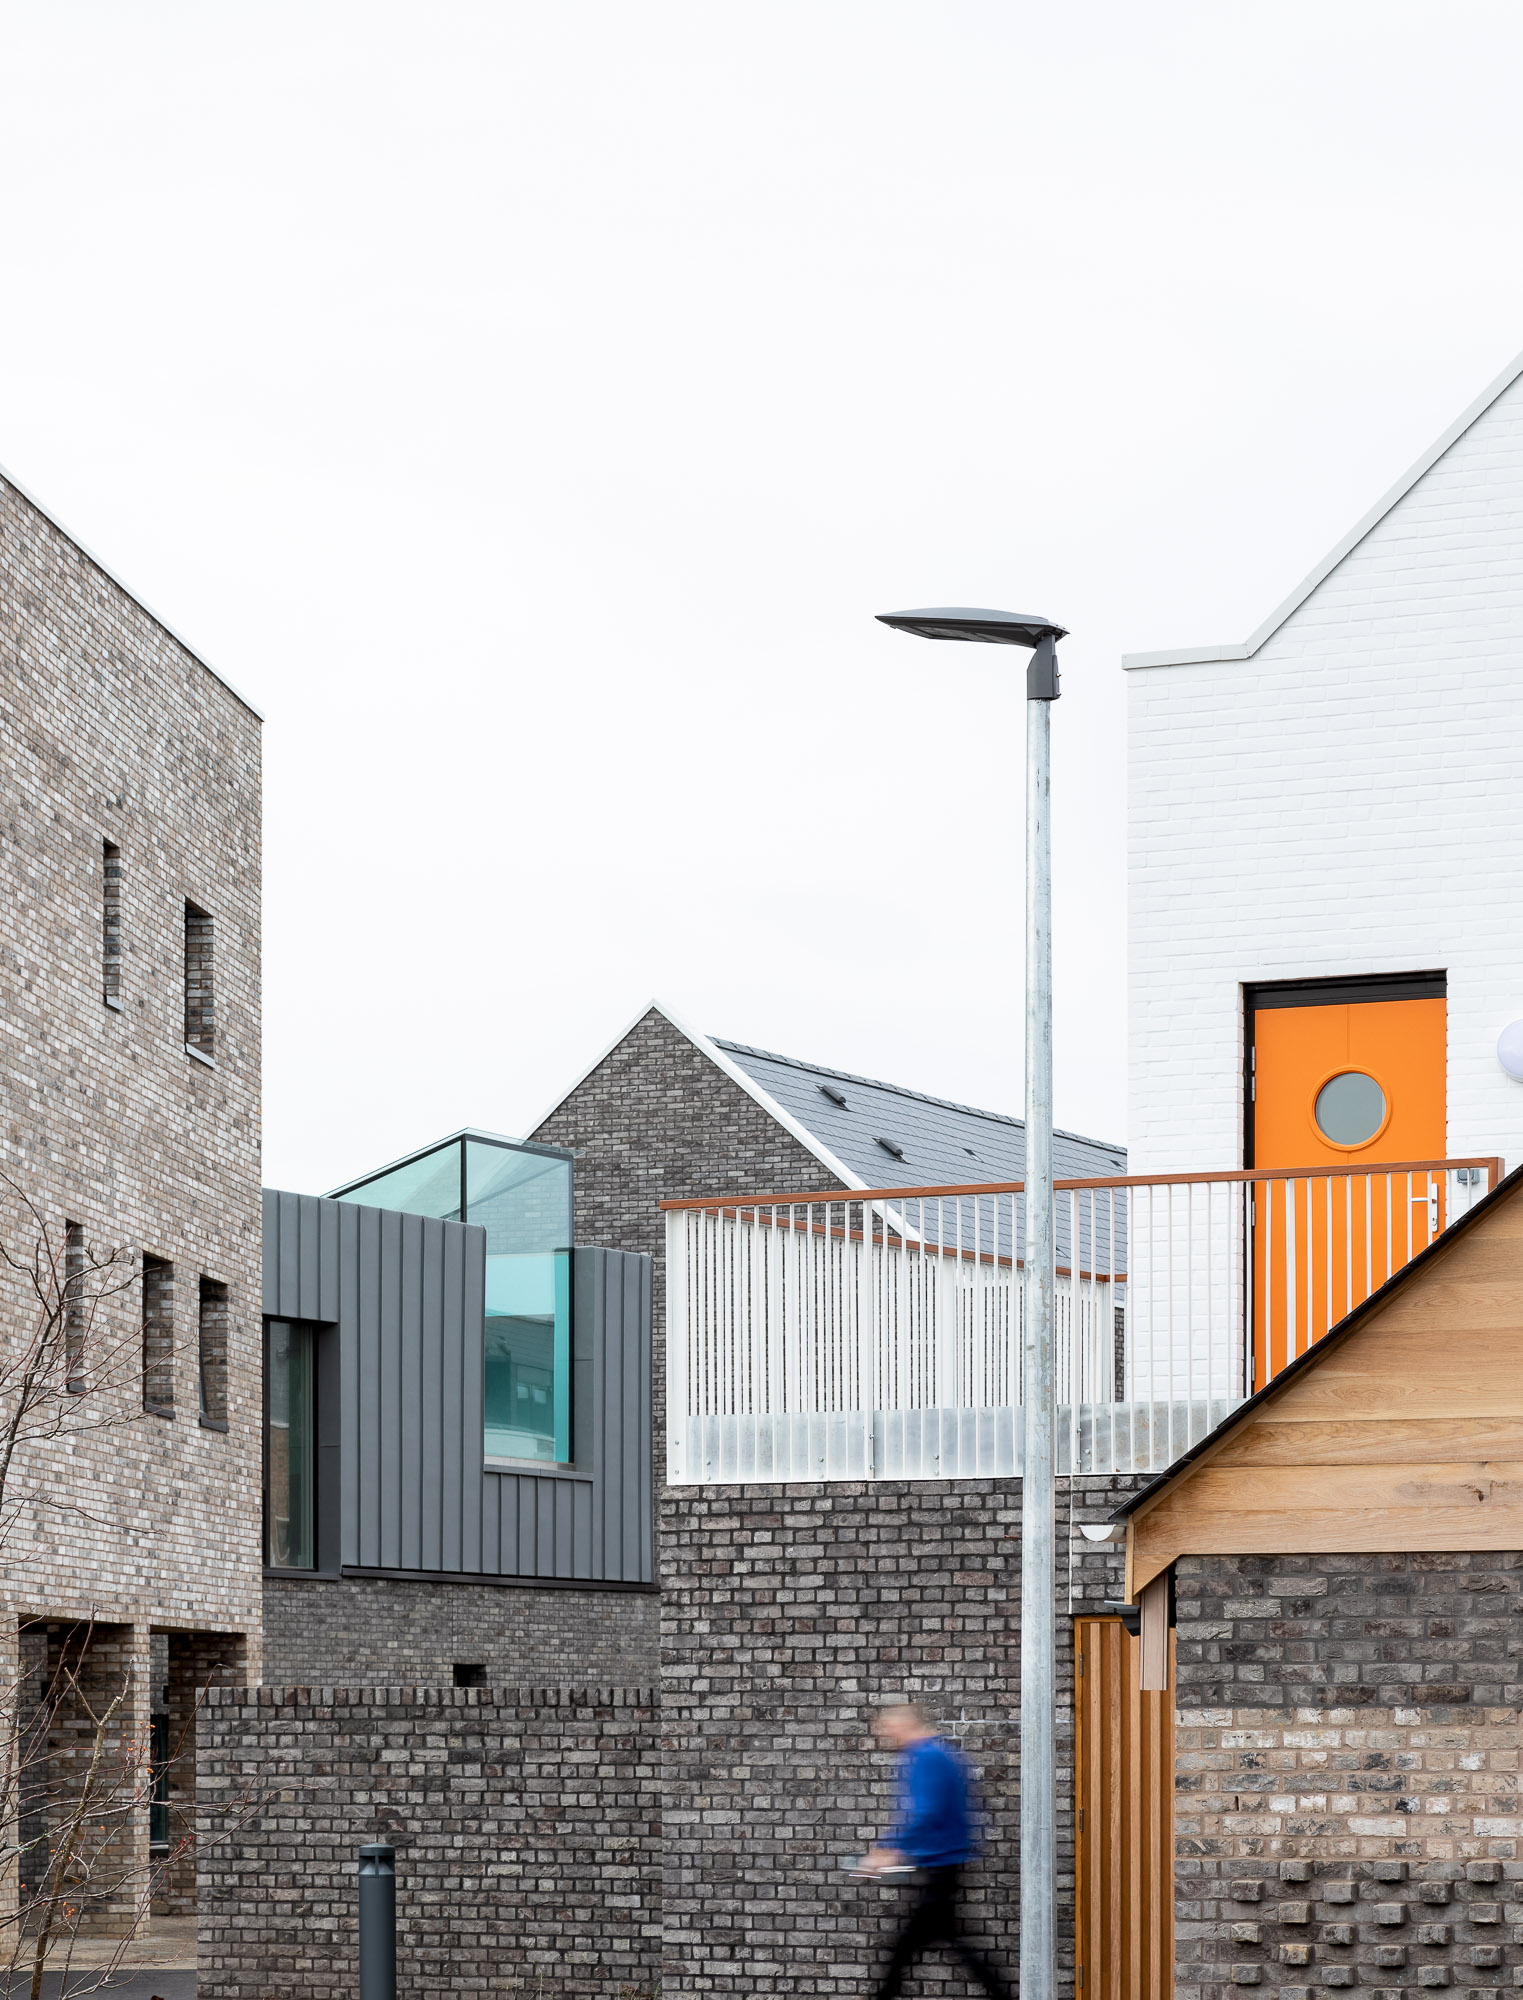 Marmalade Lane Cohousing project by Mole Architects